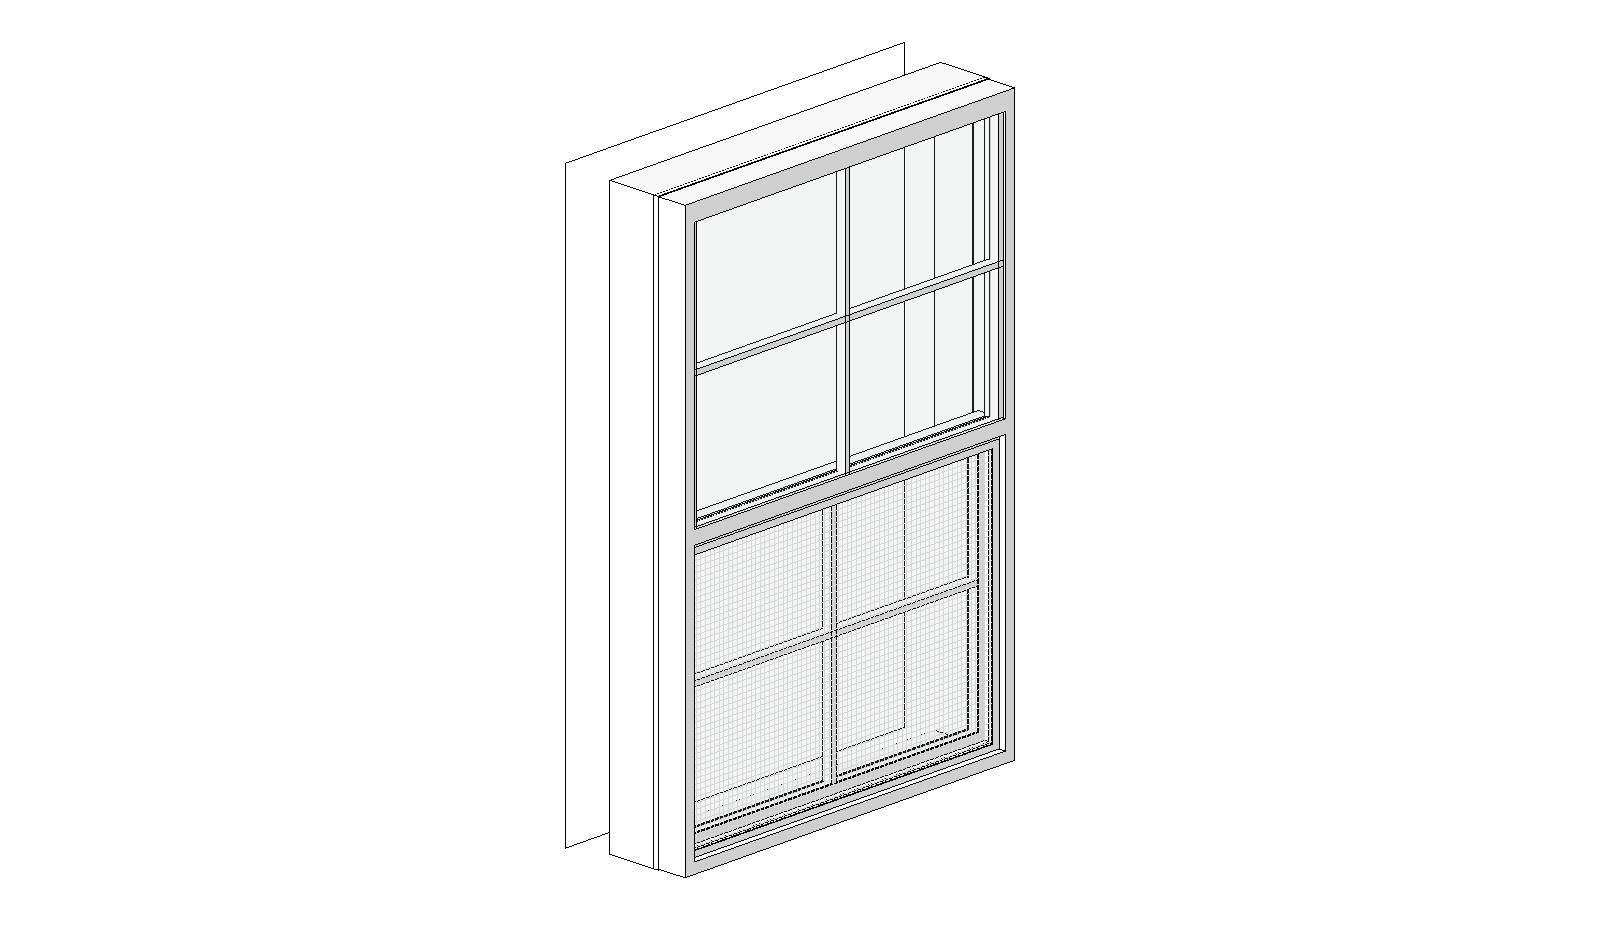 Single Hung Windows Autocad : Bim objects families